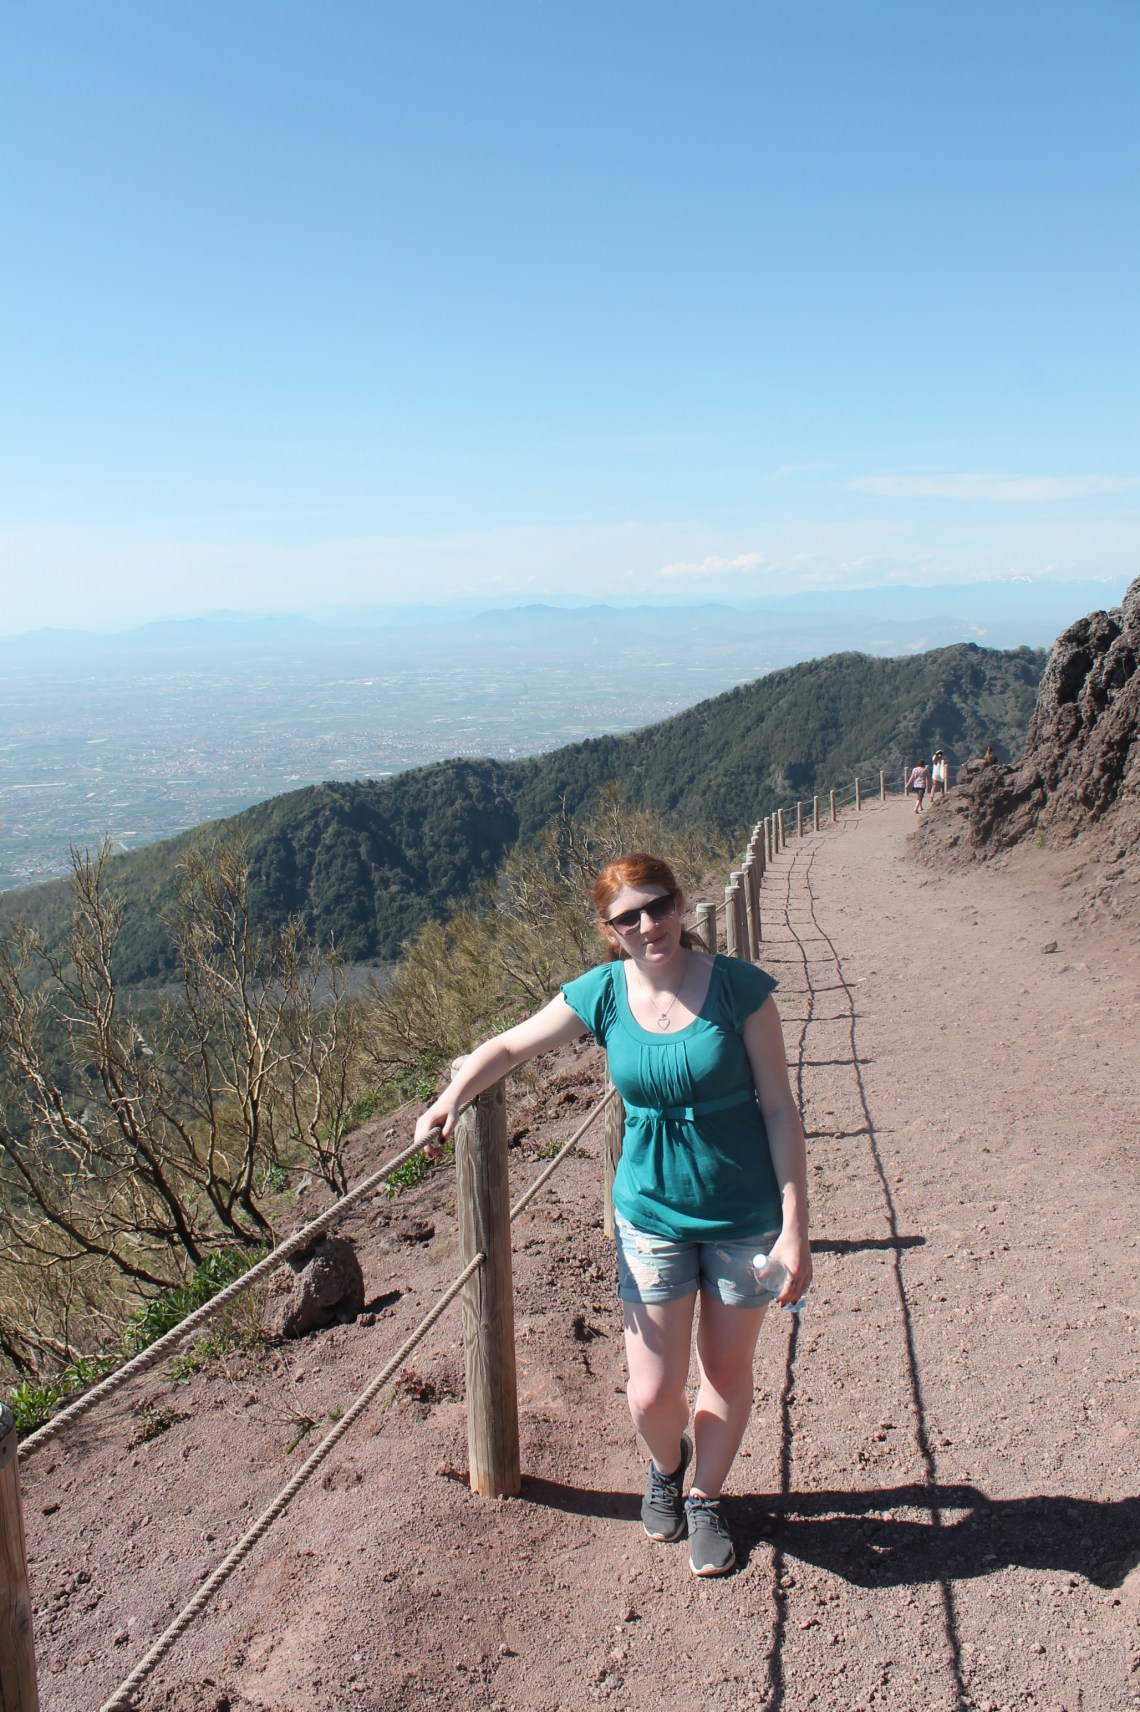 Me Hiking up the edge on Mount Vesuvius